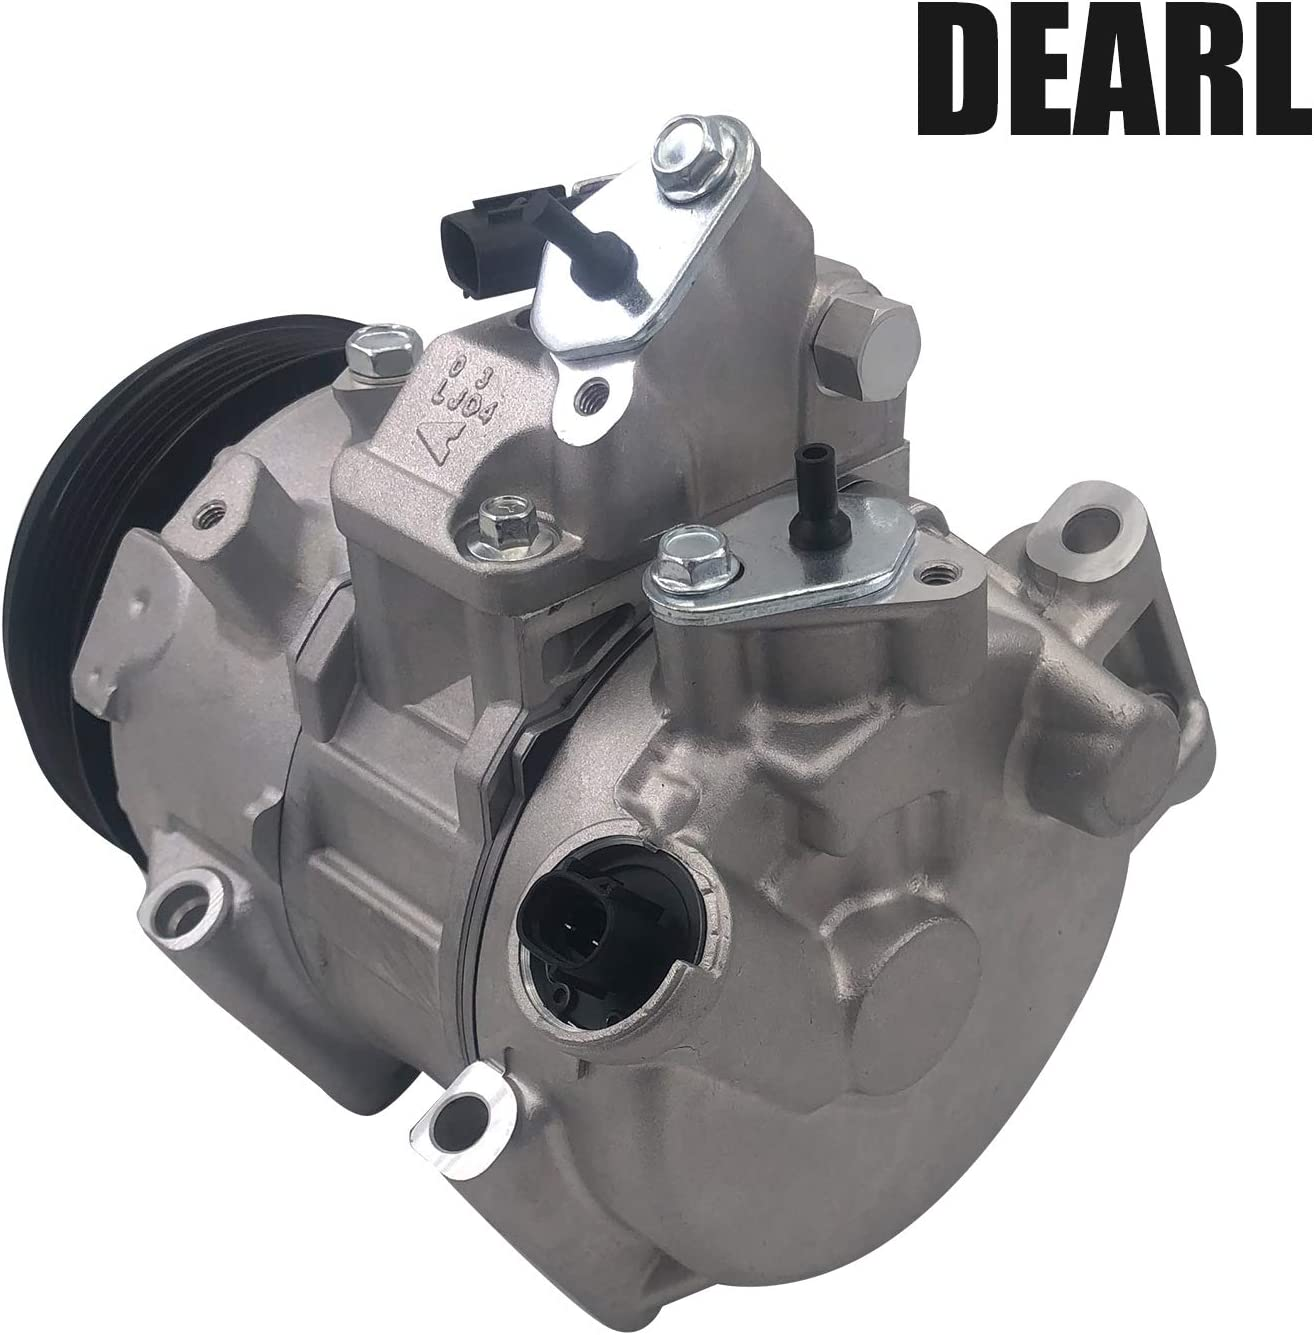 Dearl A//C AC air condition compressor with Clutch L4 2.5L compatible with Toyota 12-17 Camry 2009 2010 2011 2012 2013 2014 2015 2016 2017 09-12 Rav4 09 10 11 12 13 14 15 16 17